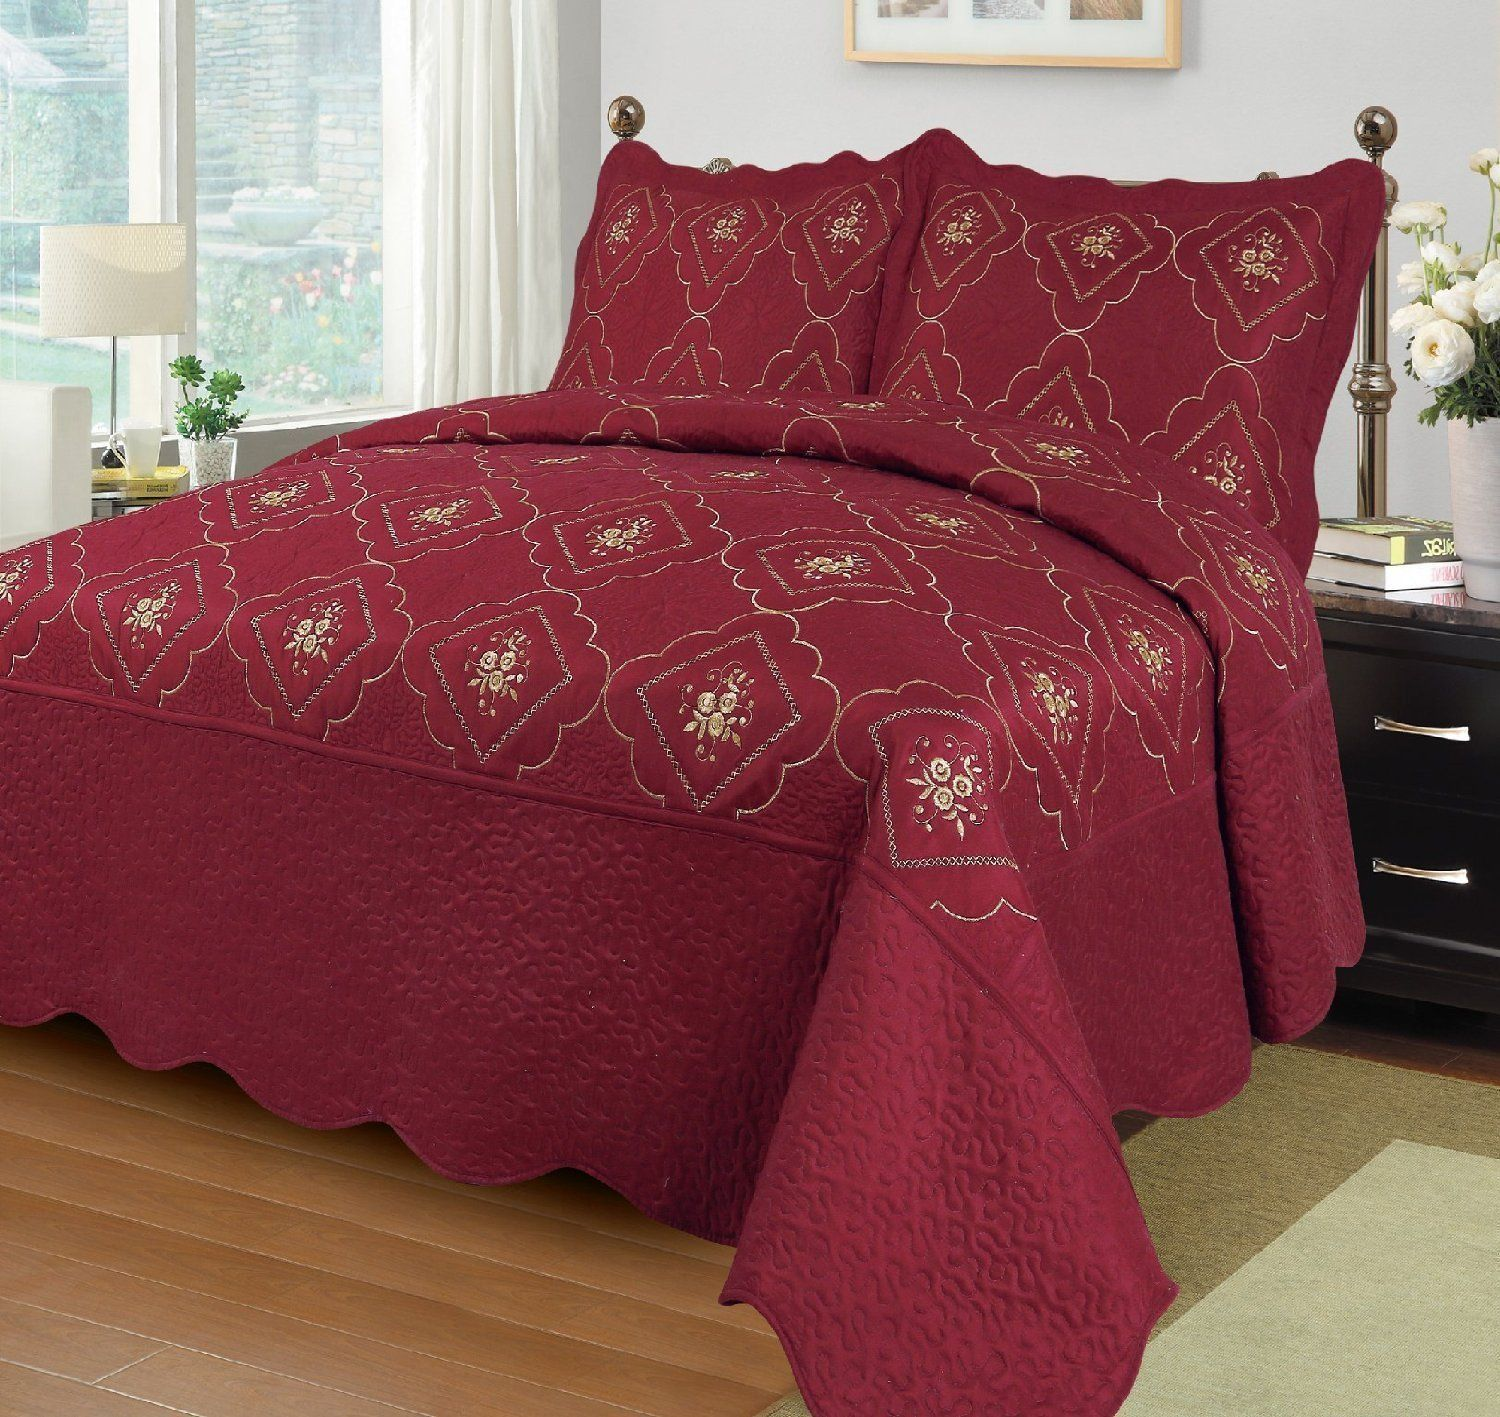 Bedspreads For Full Size Beds.Red And Beige Cream Bedding Ease Bedding With Style